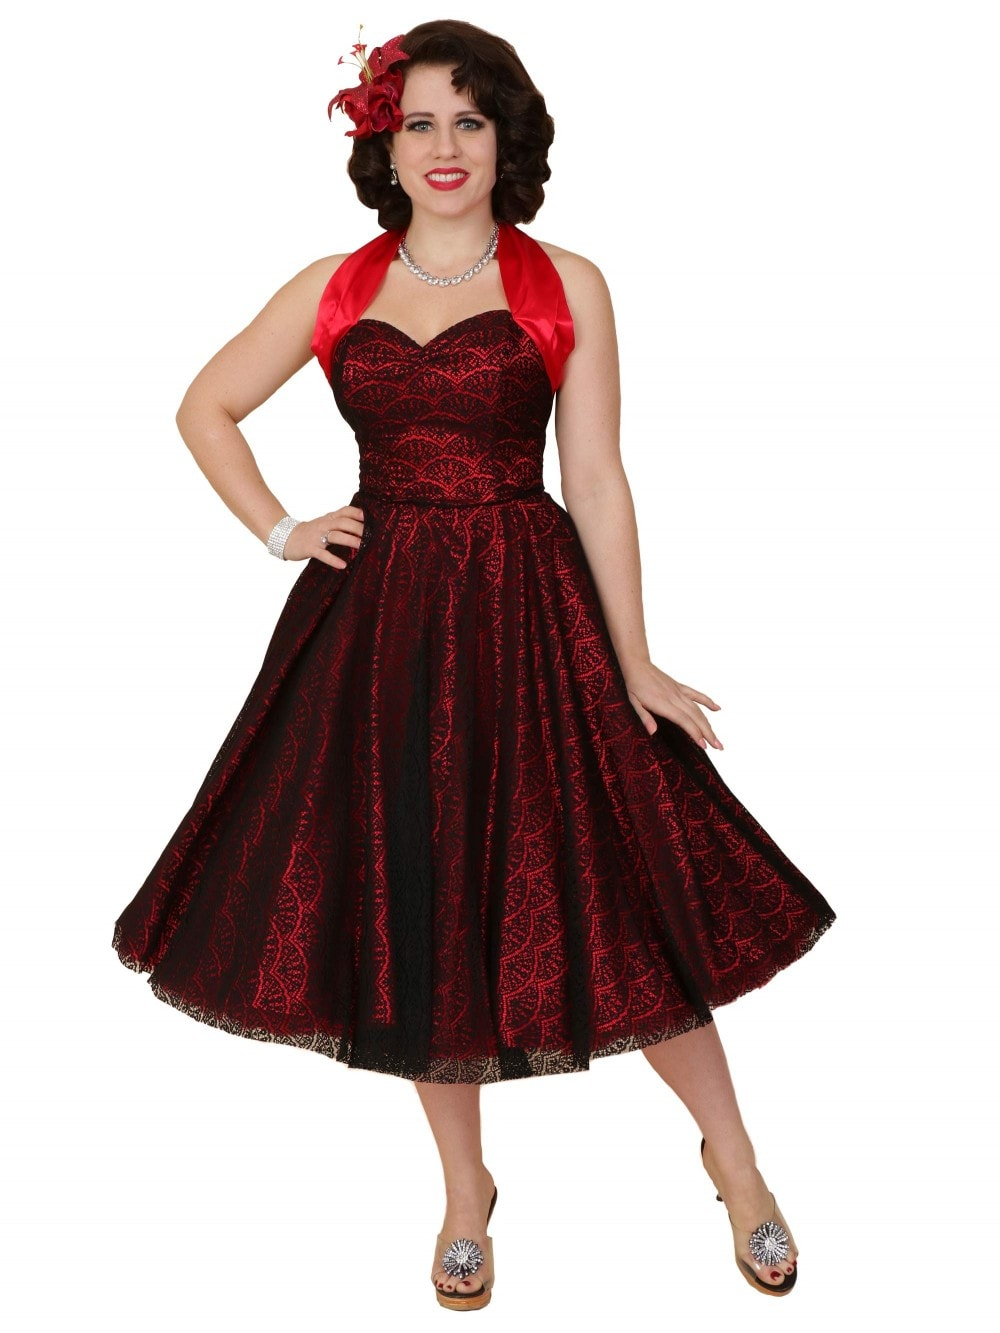 e6cb20624f2 1950s Halterneck Luxury Red Satin Fan Lace Dress From Vivien of Holloway